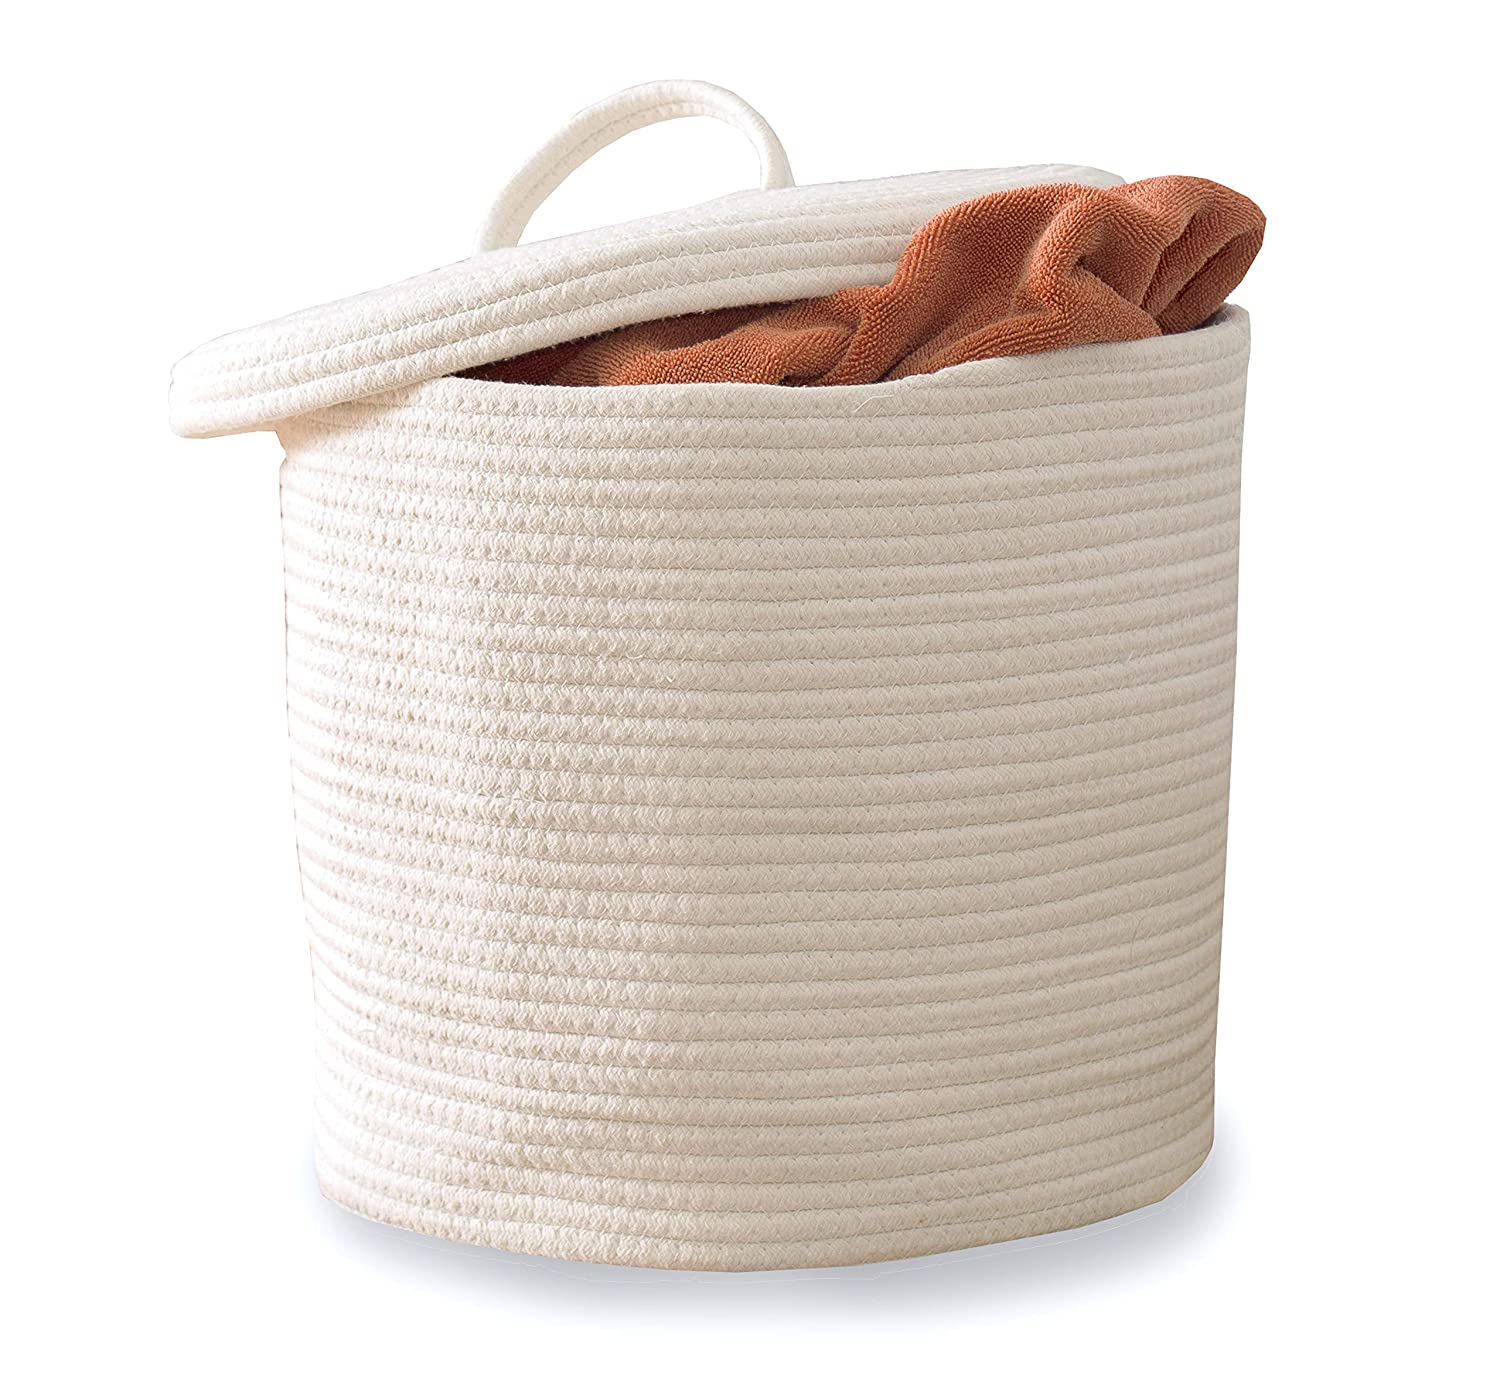 Cotton Rope Storage Basket- Large Woven Baskets with Lid and Handles 15 x 13 Home Living Room Floor Toy Organizing bins for Nursery White Round Hamper Pillow and Big Laundry Blanket